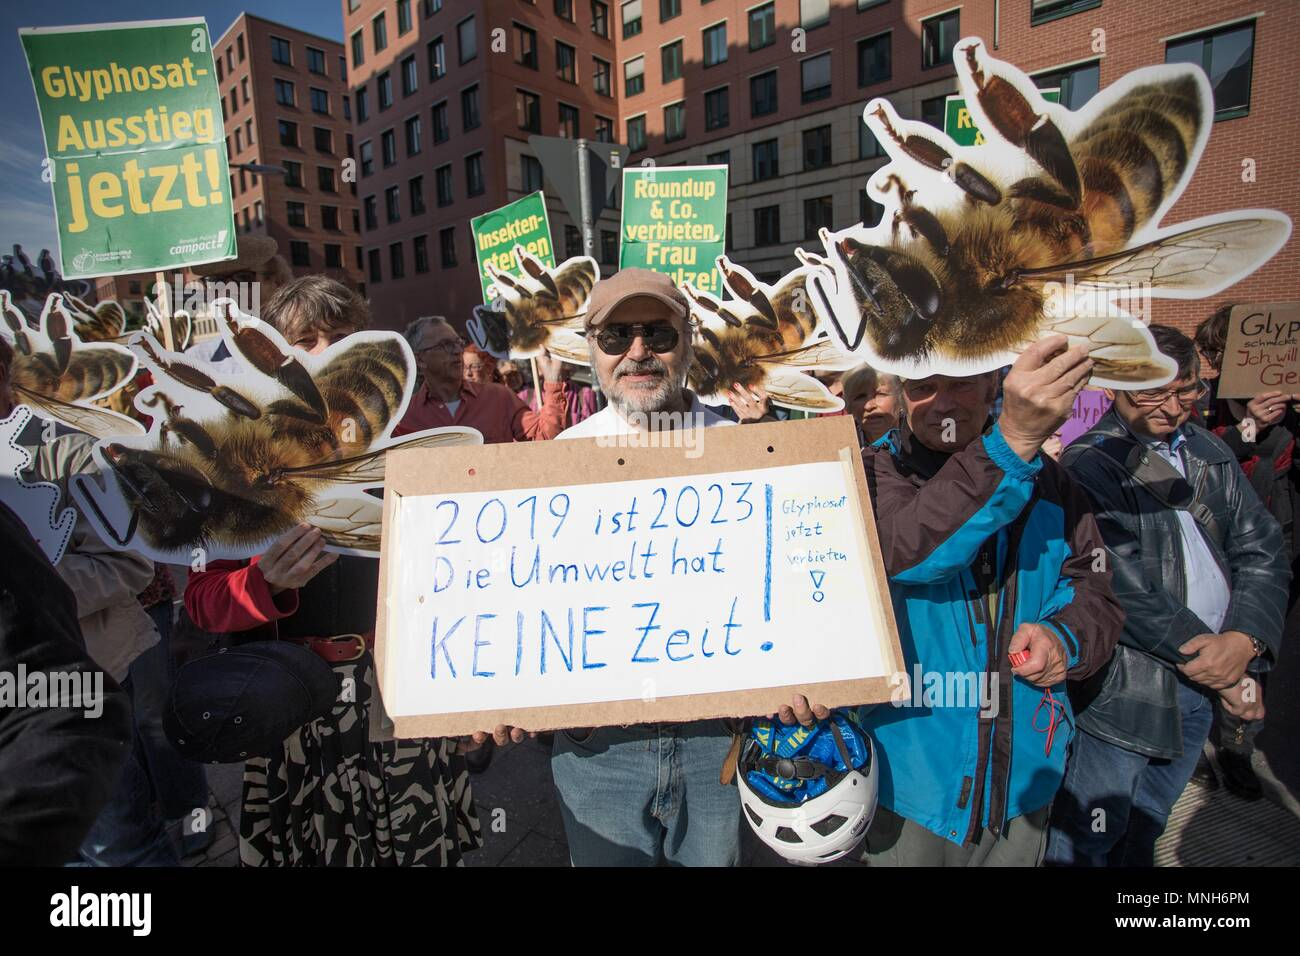 Berlin, Germany. 17th May, 2018. 17 May 2018, German, Berlin: Activists campaigning for a glyphosate ban during a Campact demonstration outside the German environment ministry. Credit: Jörg Carstensen/dpa/Alamy Live News Stock Photo